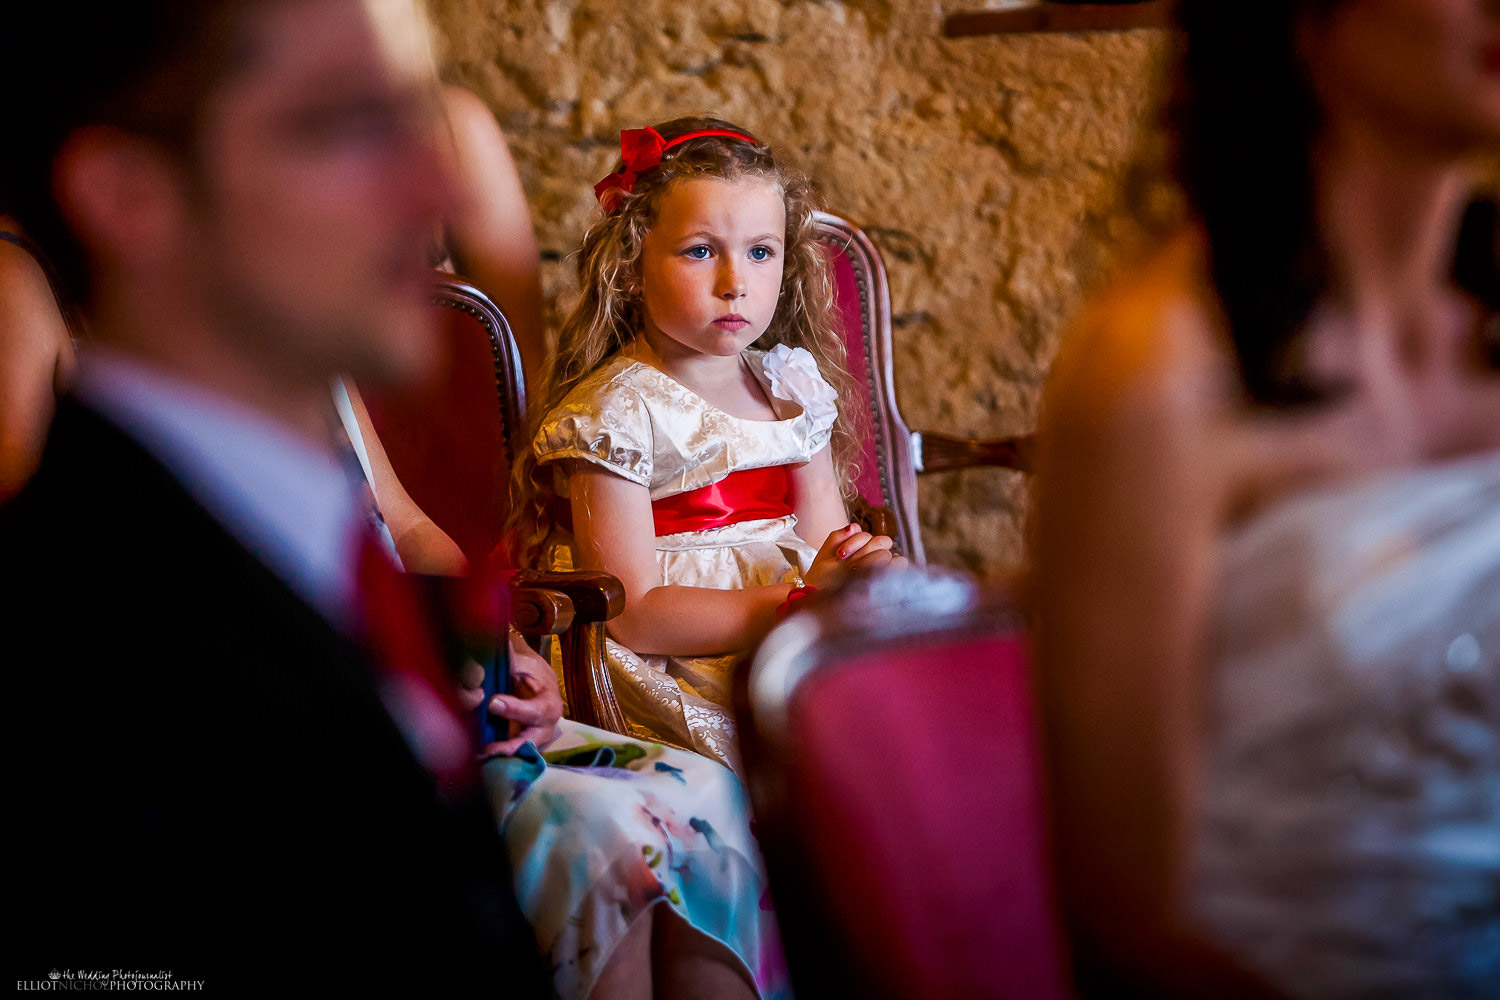 Child wedding guest watching the wedding ceremony in Sicily.